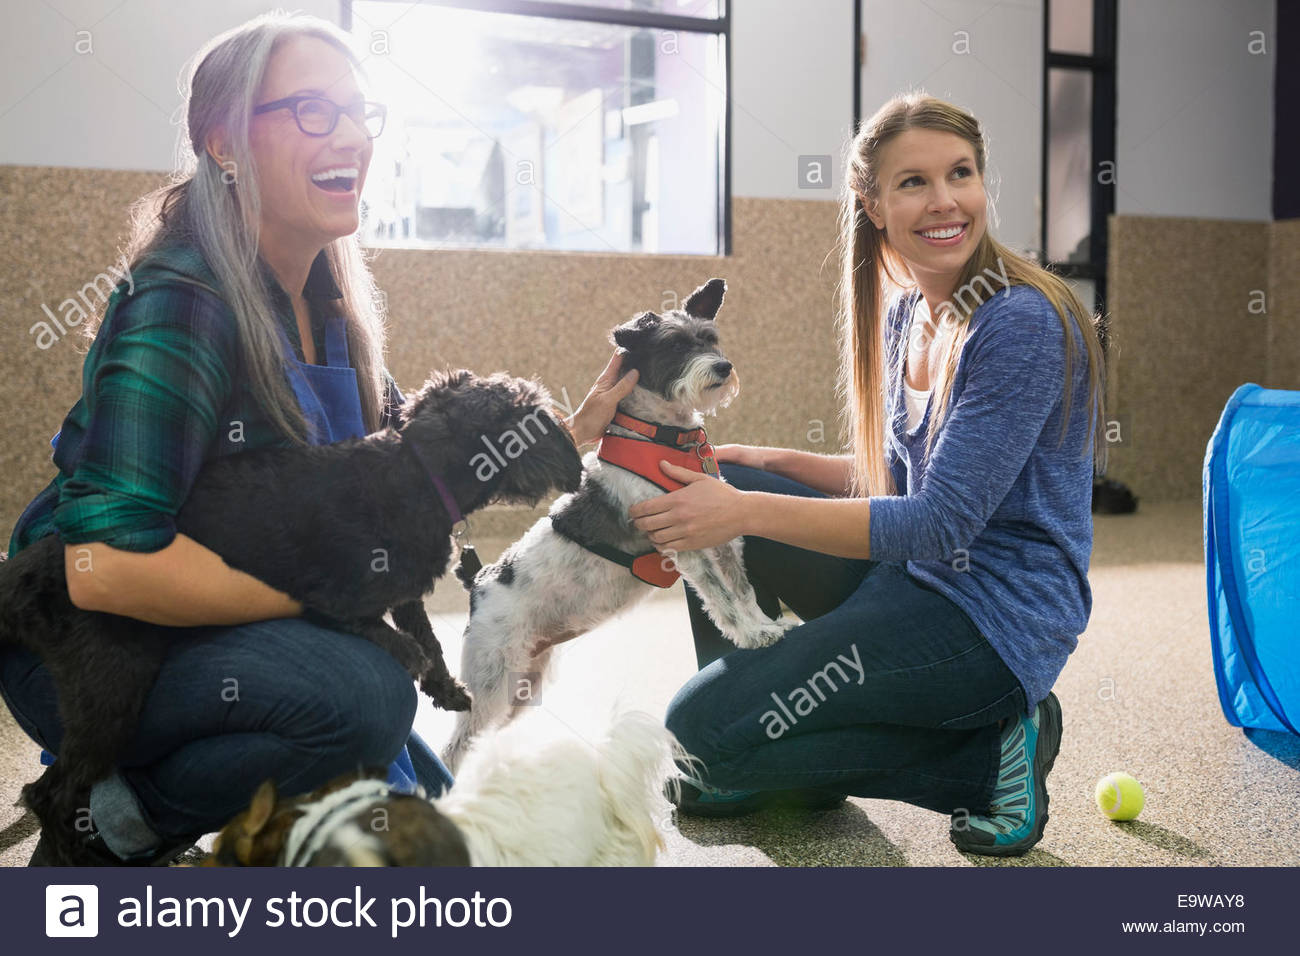 Dog daycare owners playing with dogs - Stock Image